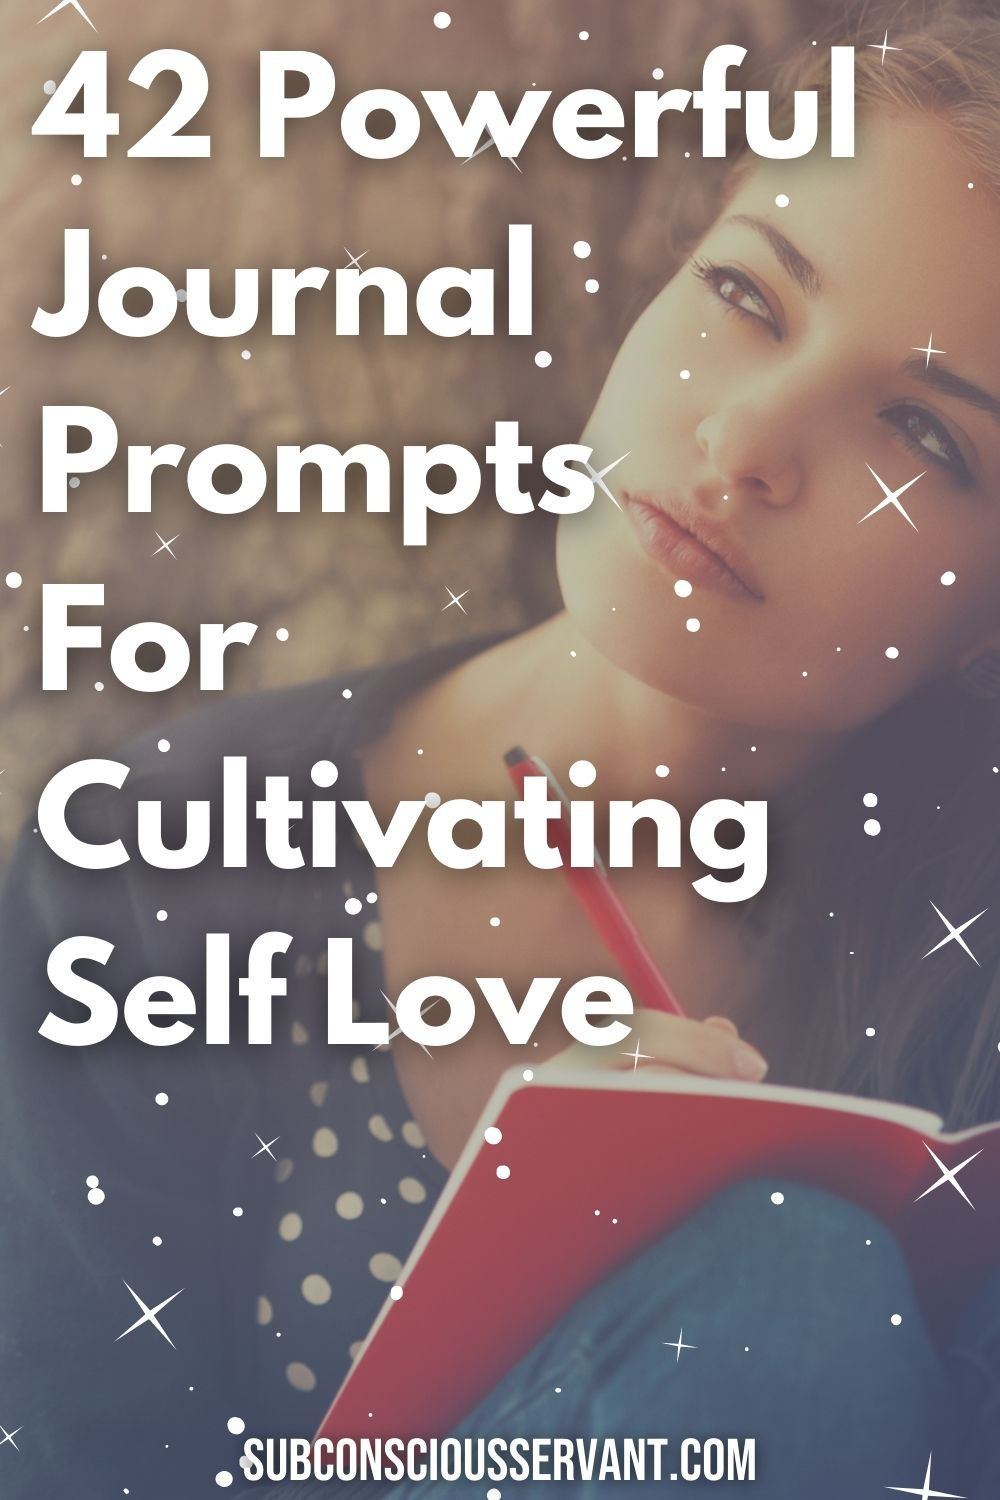 42 Powerful Journal Prompts For Cultivating Self Love